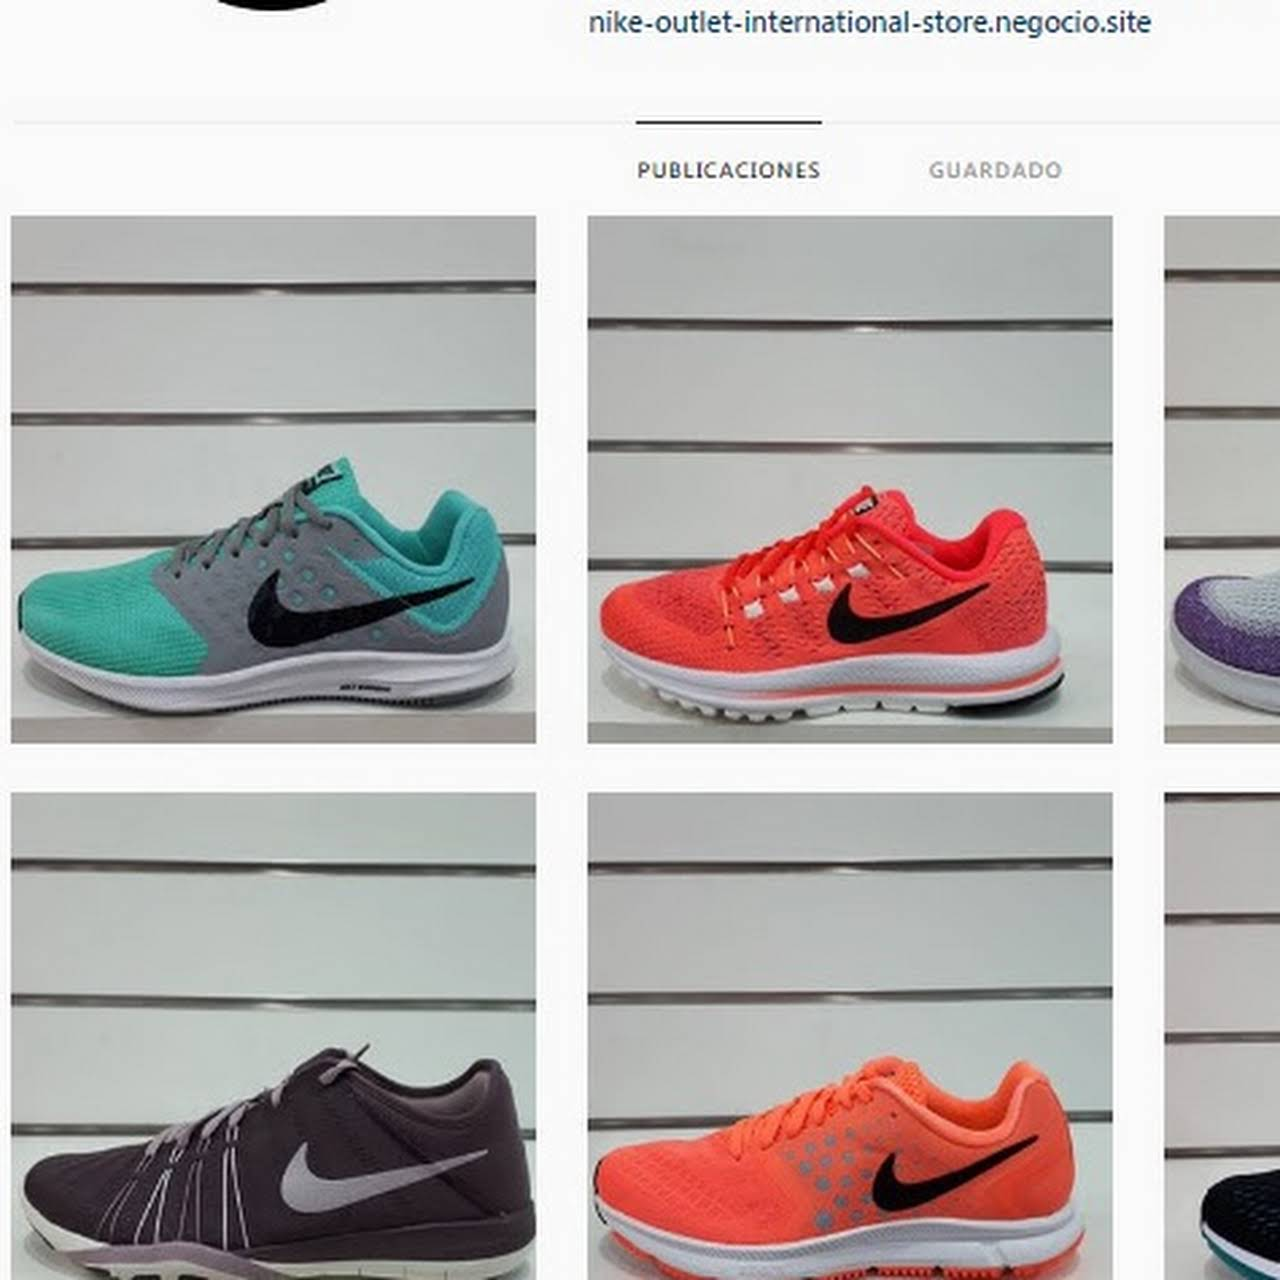 Outlet International Nike Store International Nike Store jSVUzqLMGp